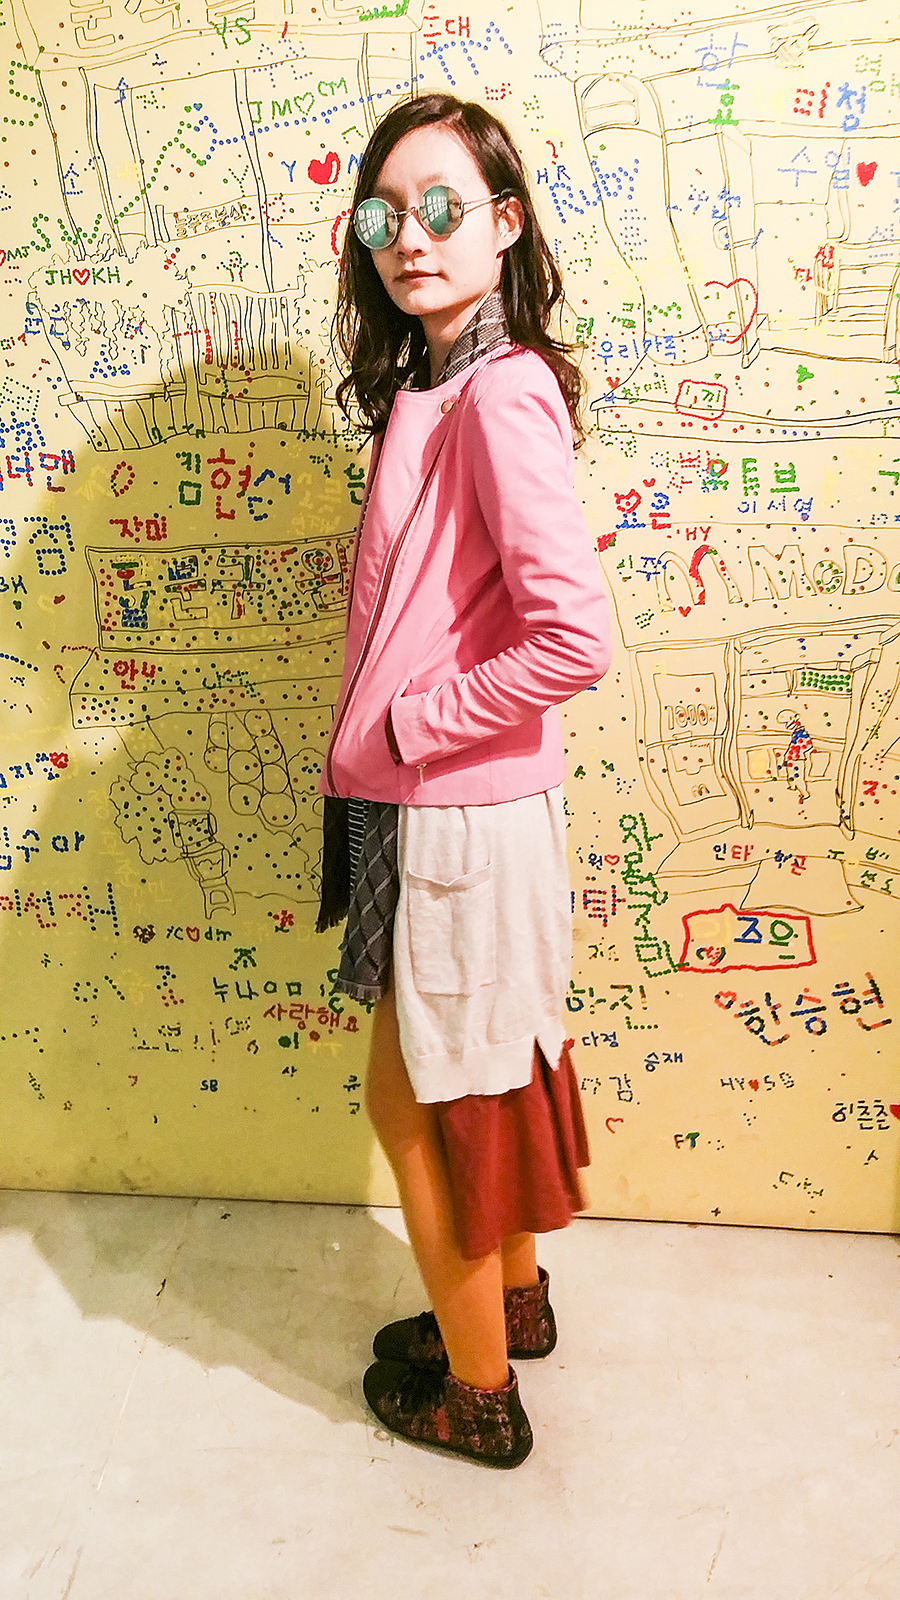 Outfit photo at Seoul Comics Space Zaemirang at Zaemiro Seoul Comics Road, South Korea. Featuring pink leather jacket from Viparo, striped dress and oversized cardigan from Zara, mustard yellow tights from Uniqlo, McQ x Puma high top sneakers.